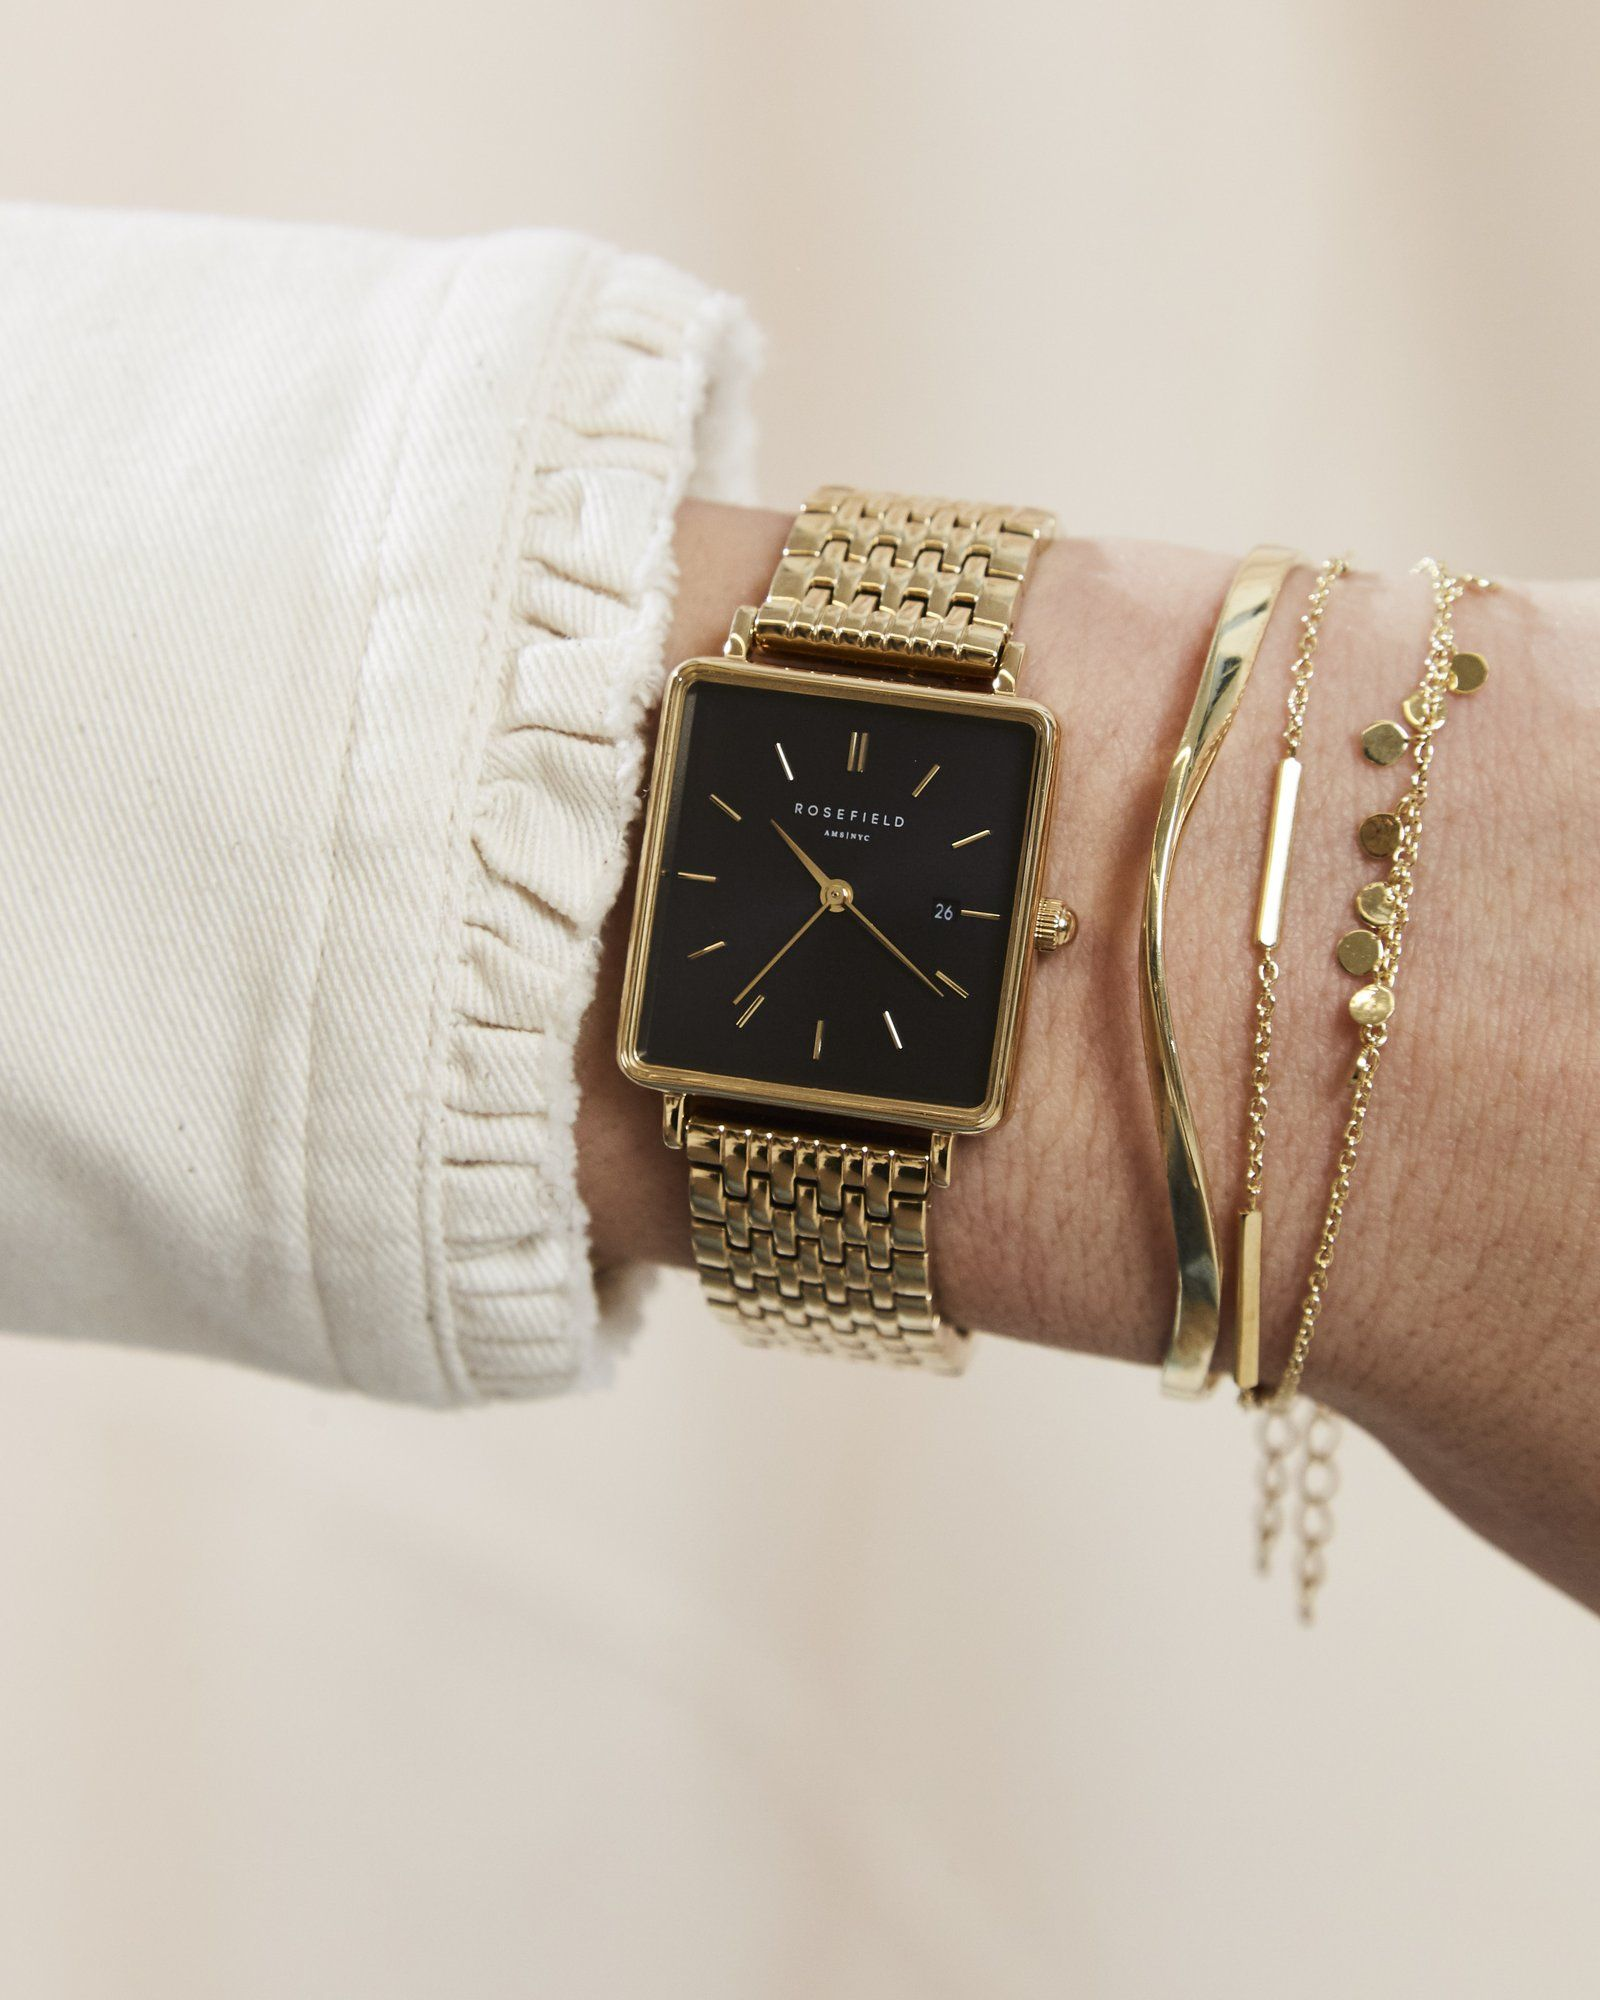 The Boxy Black Gold #vintagewatches